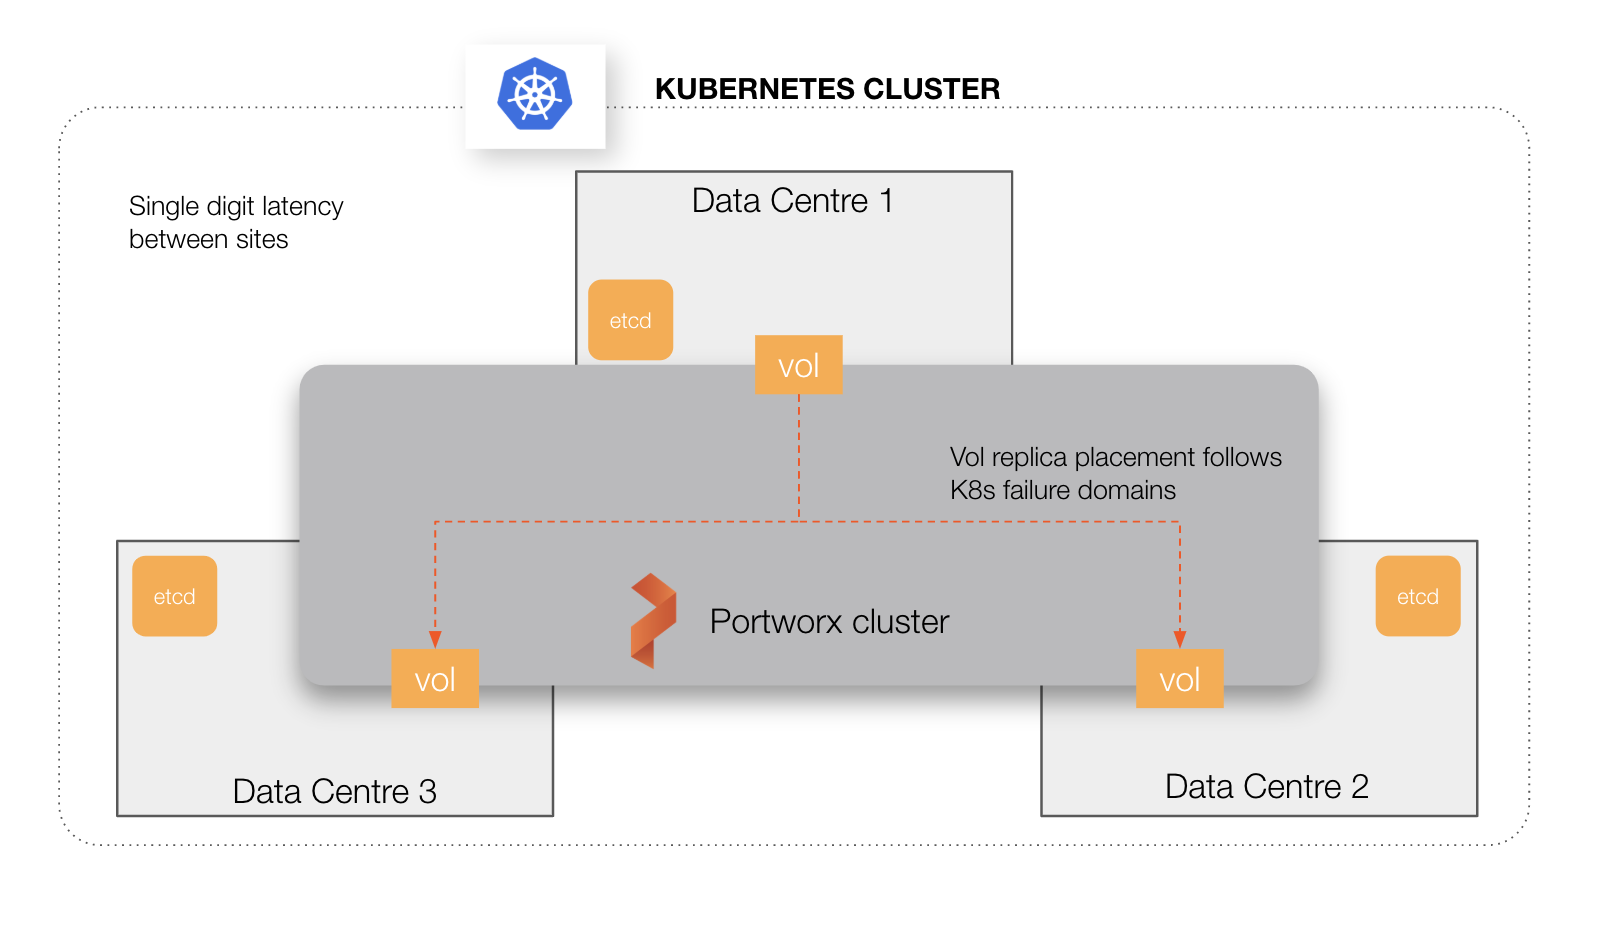 Multi-site data center stretch cluster for HA